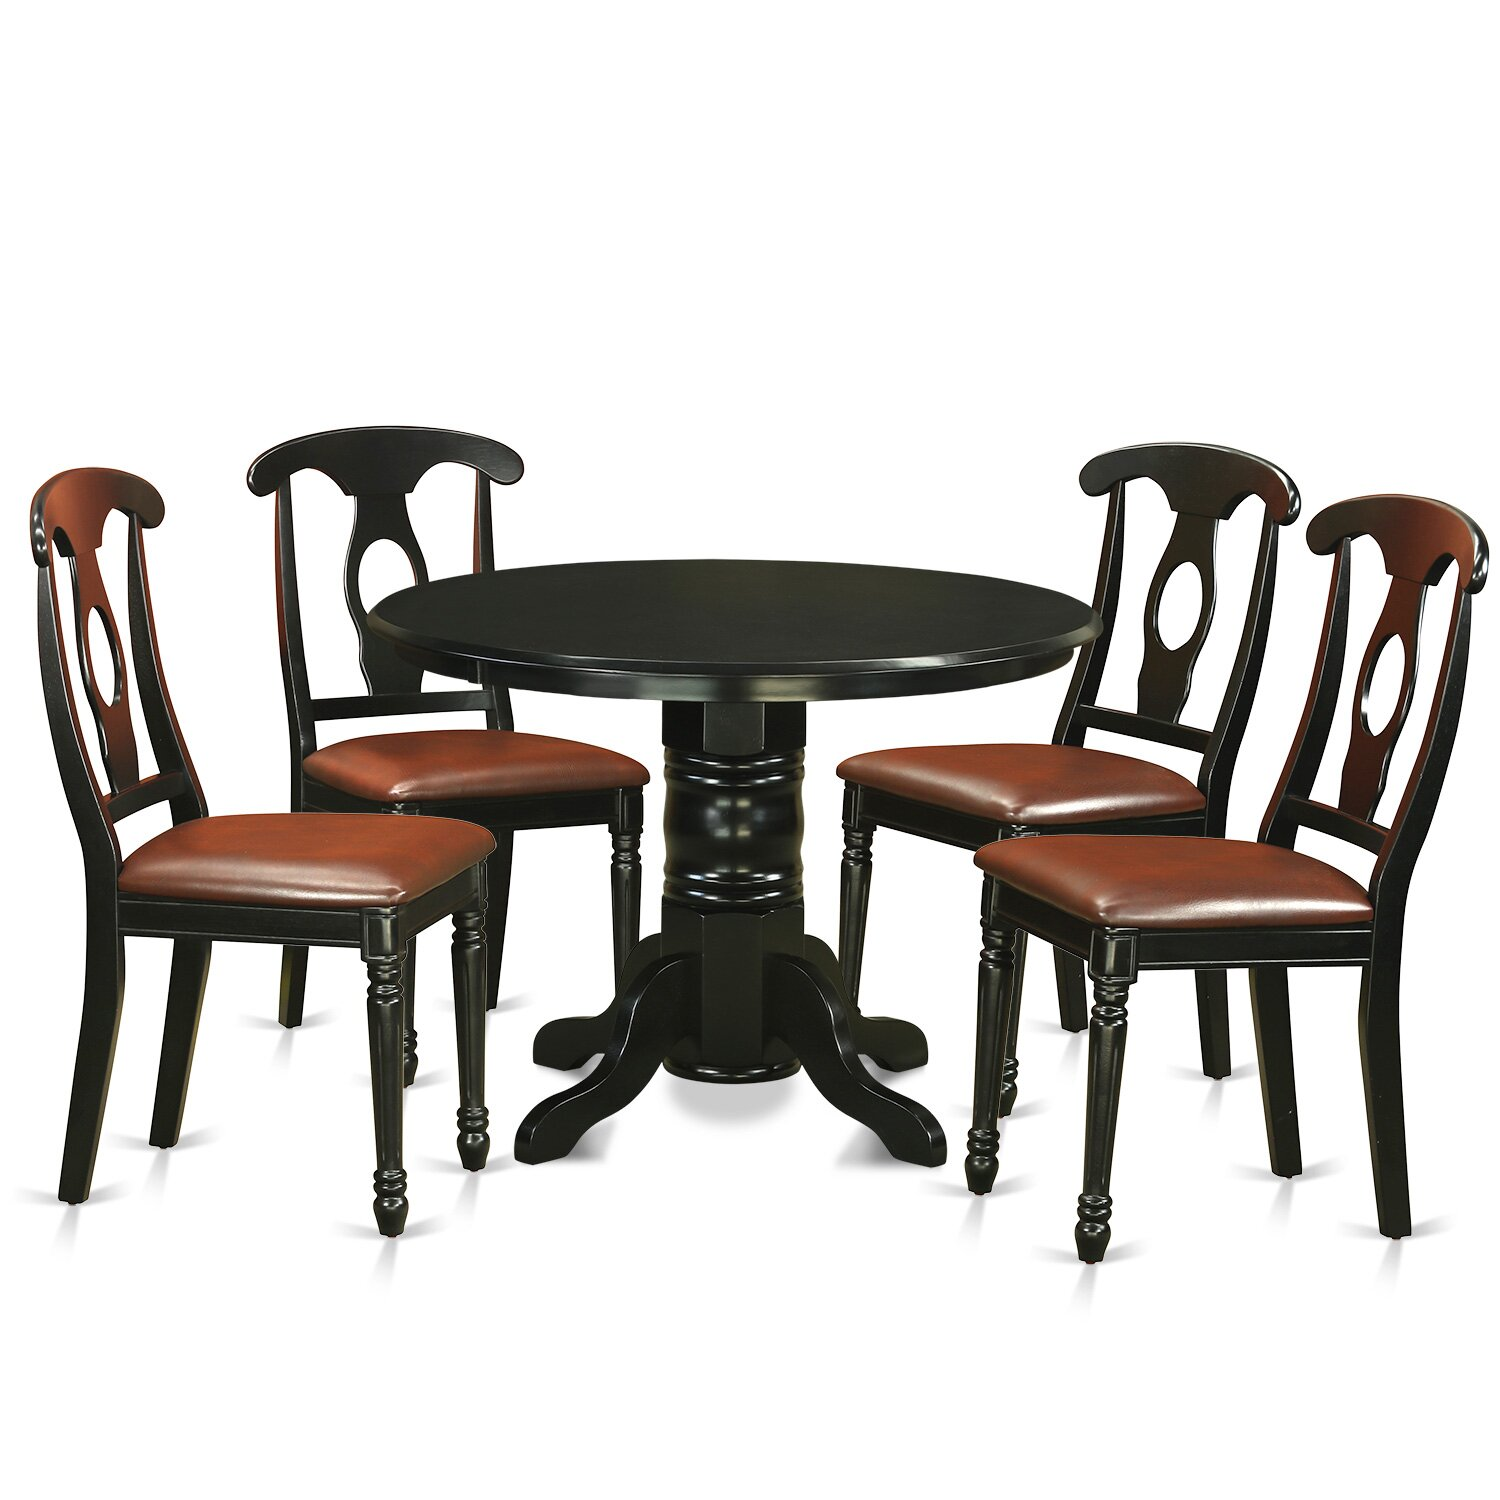 East west shelton 5 piece dining set reviews wayfair for Kitchen dining furniture